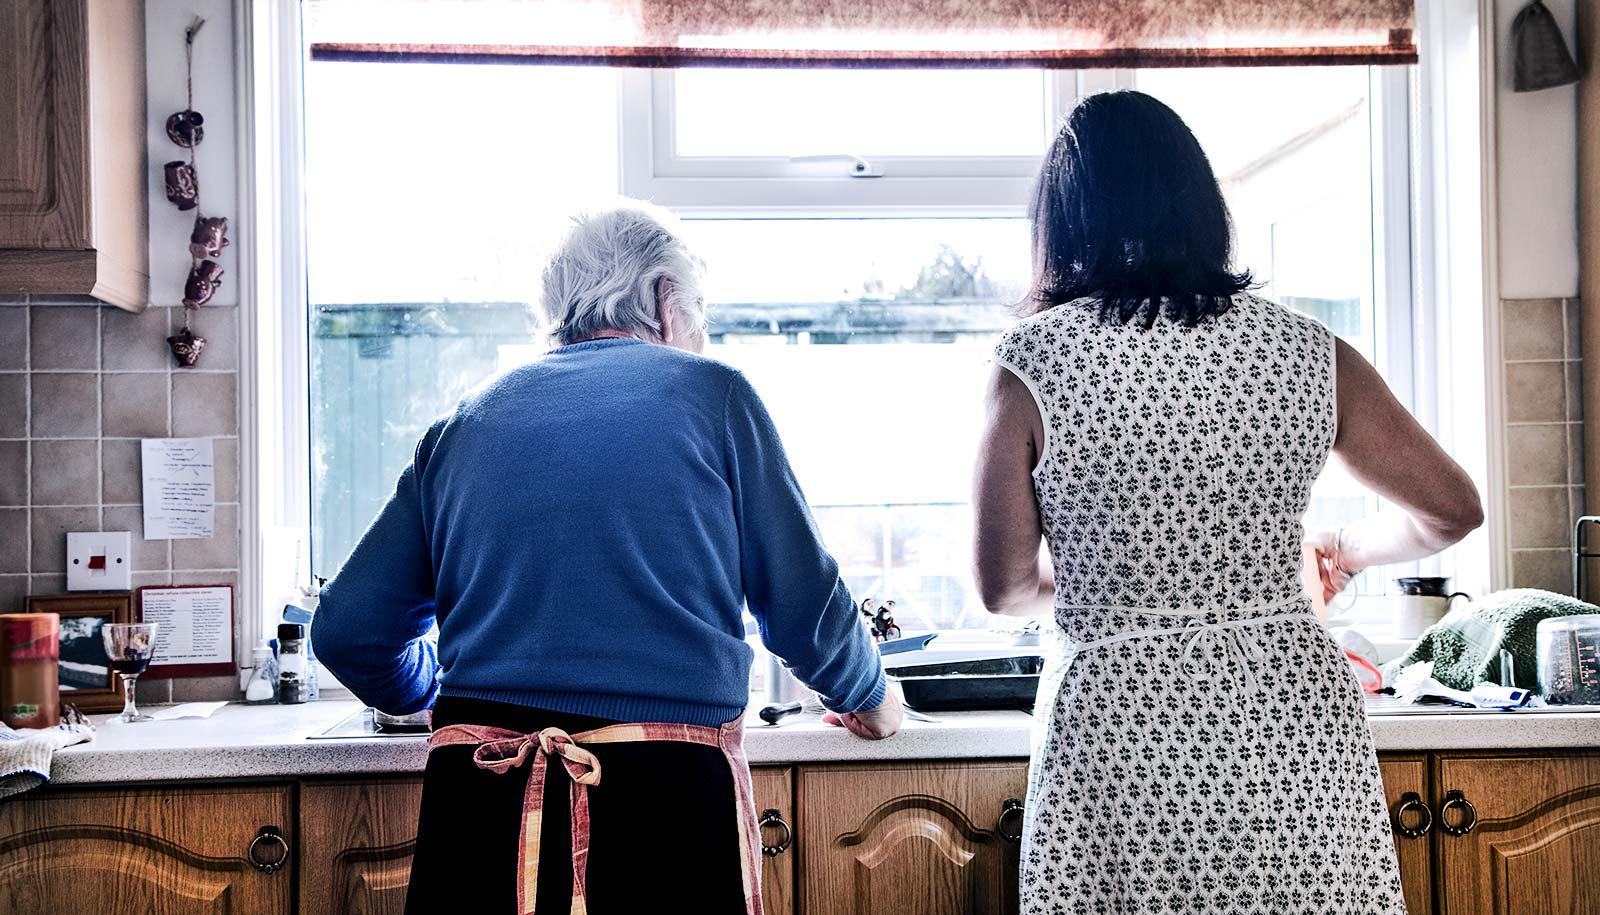 caregiver in the kitchen